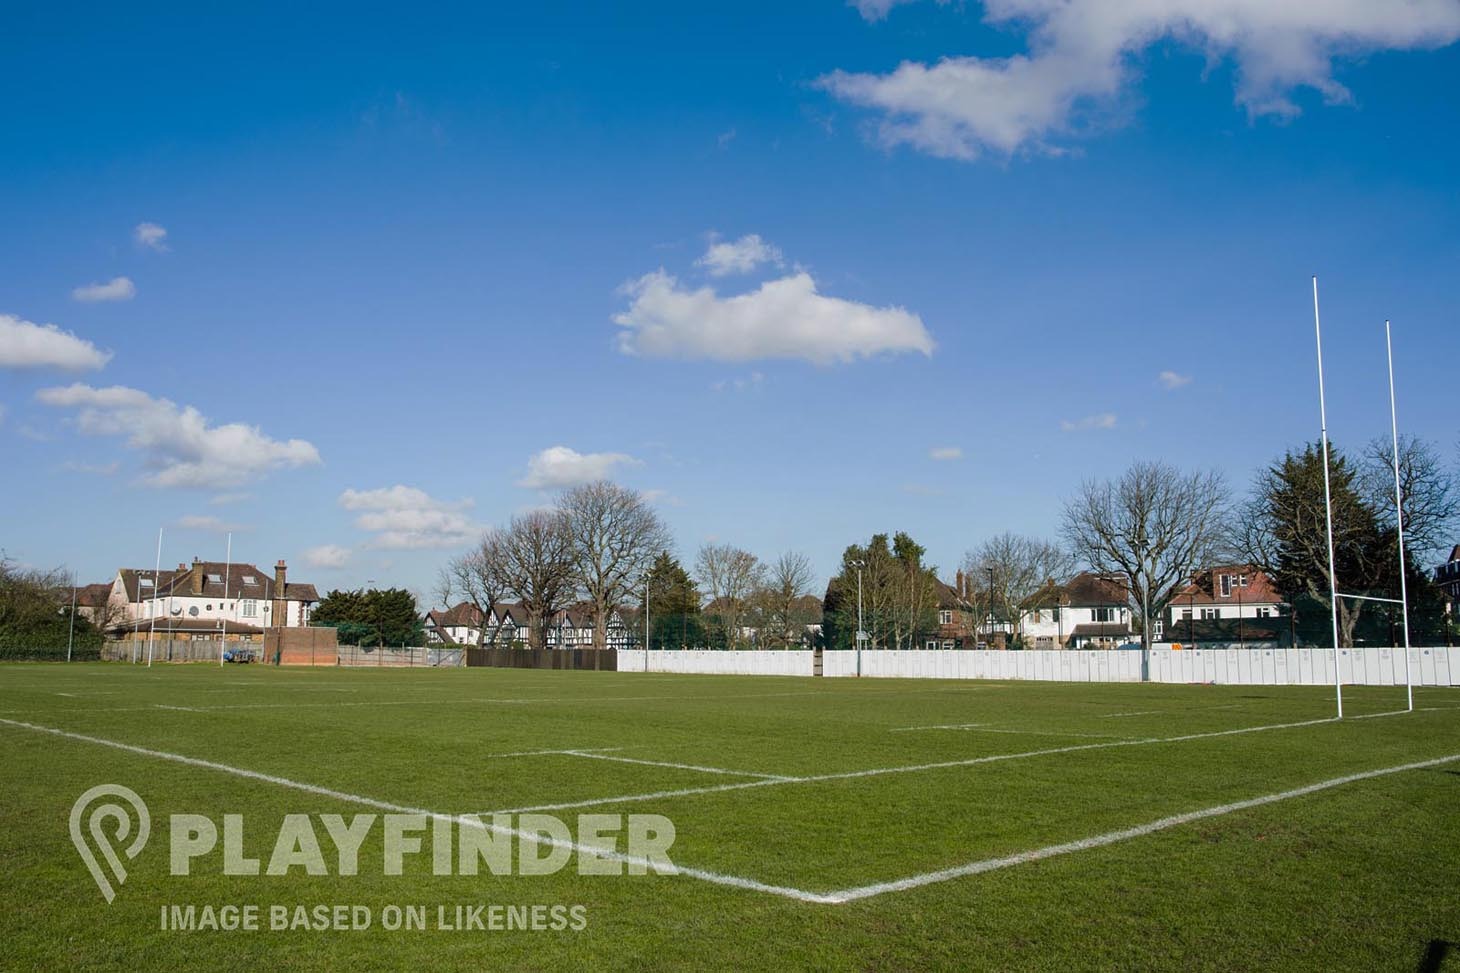 Wanderers FC Union | Grass rugby pitch